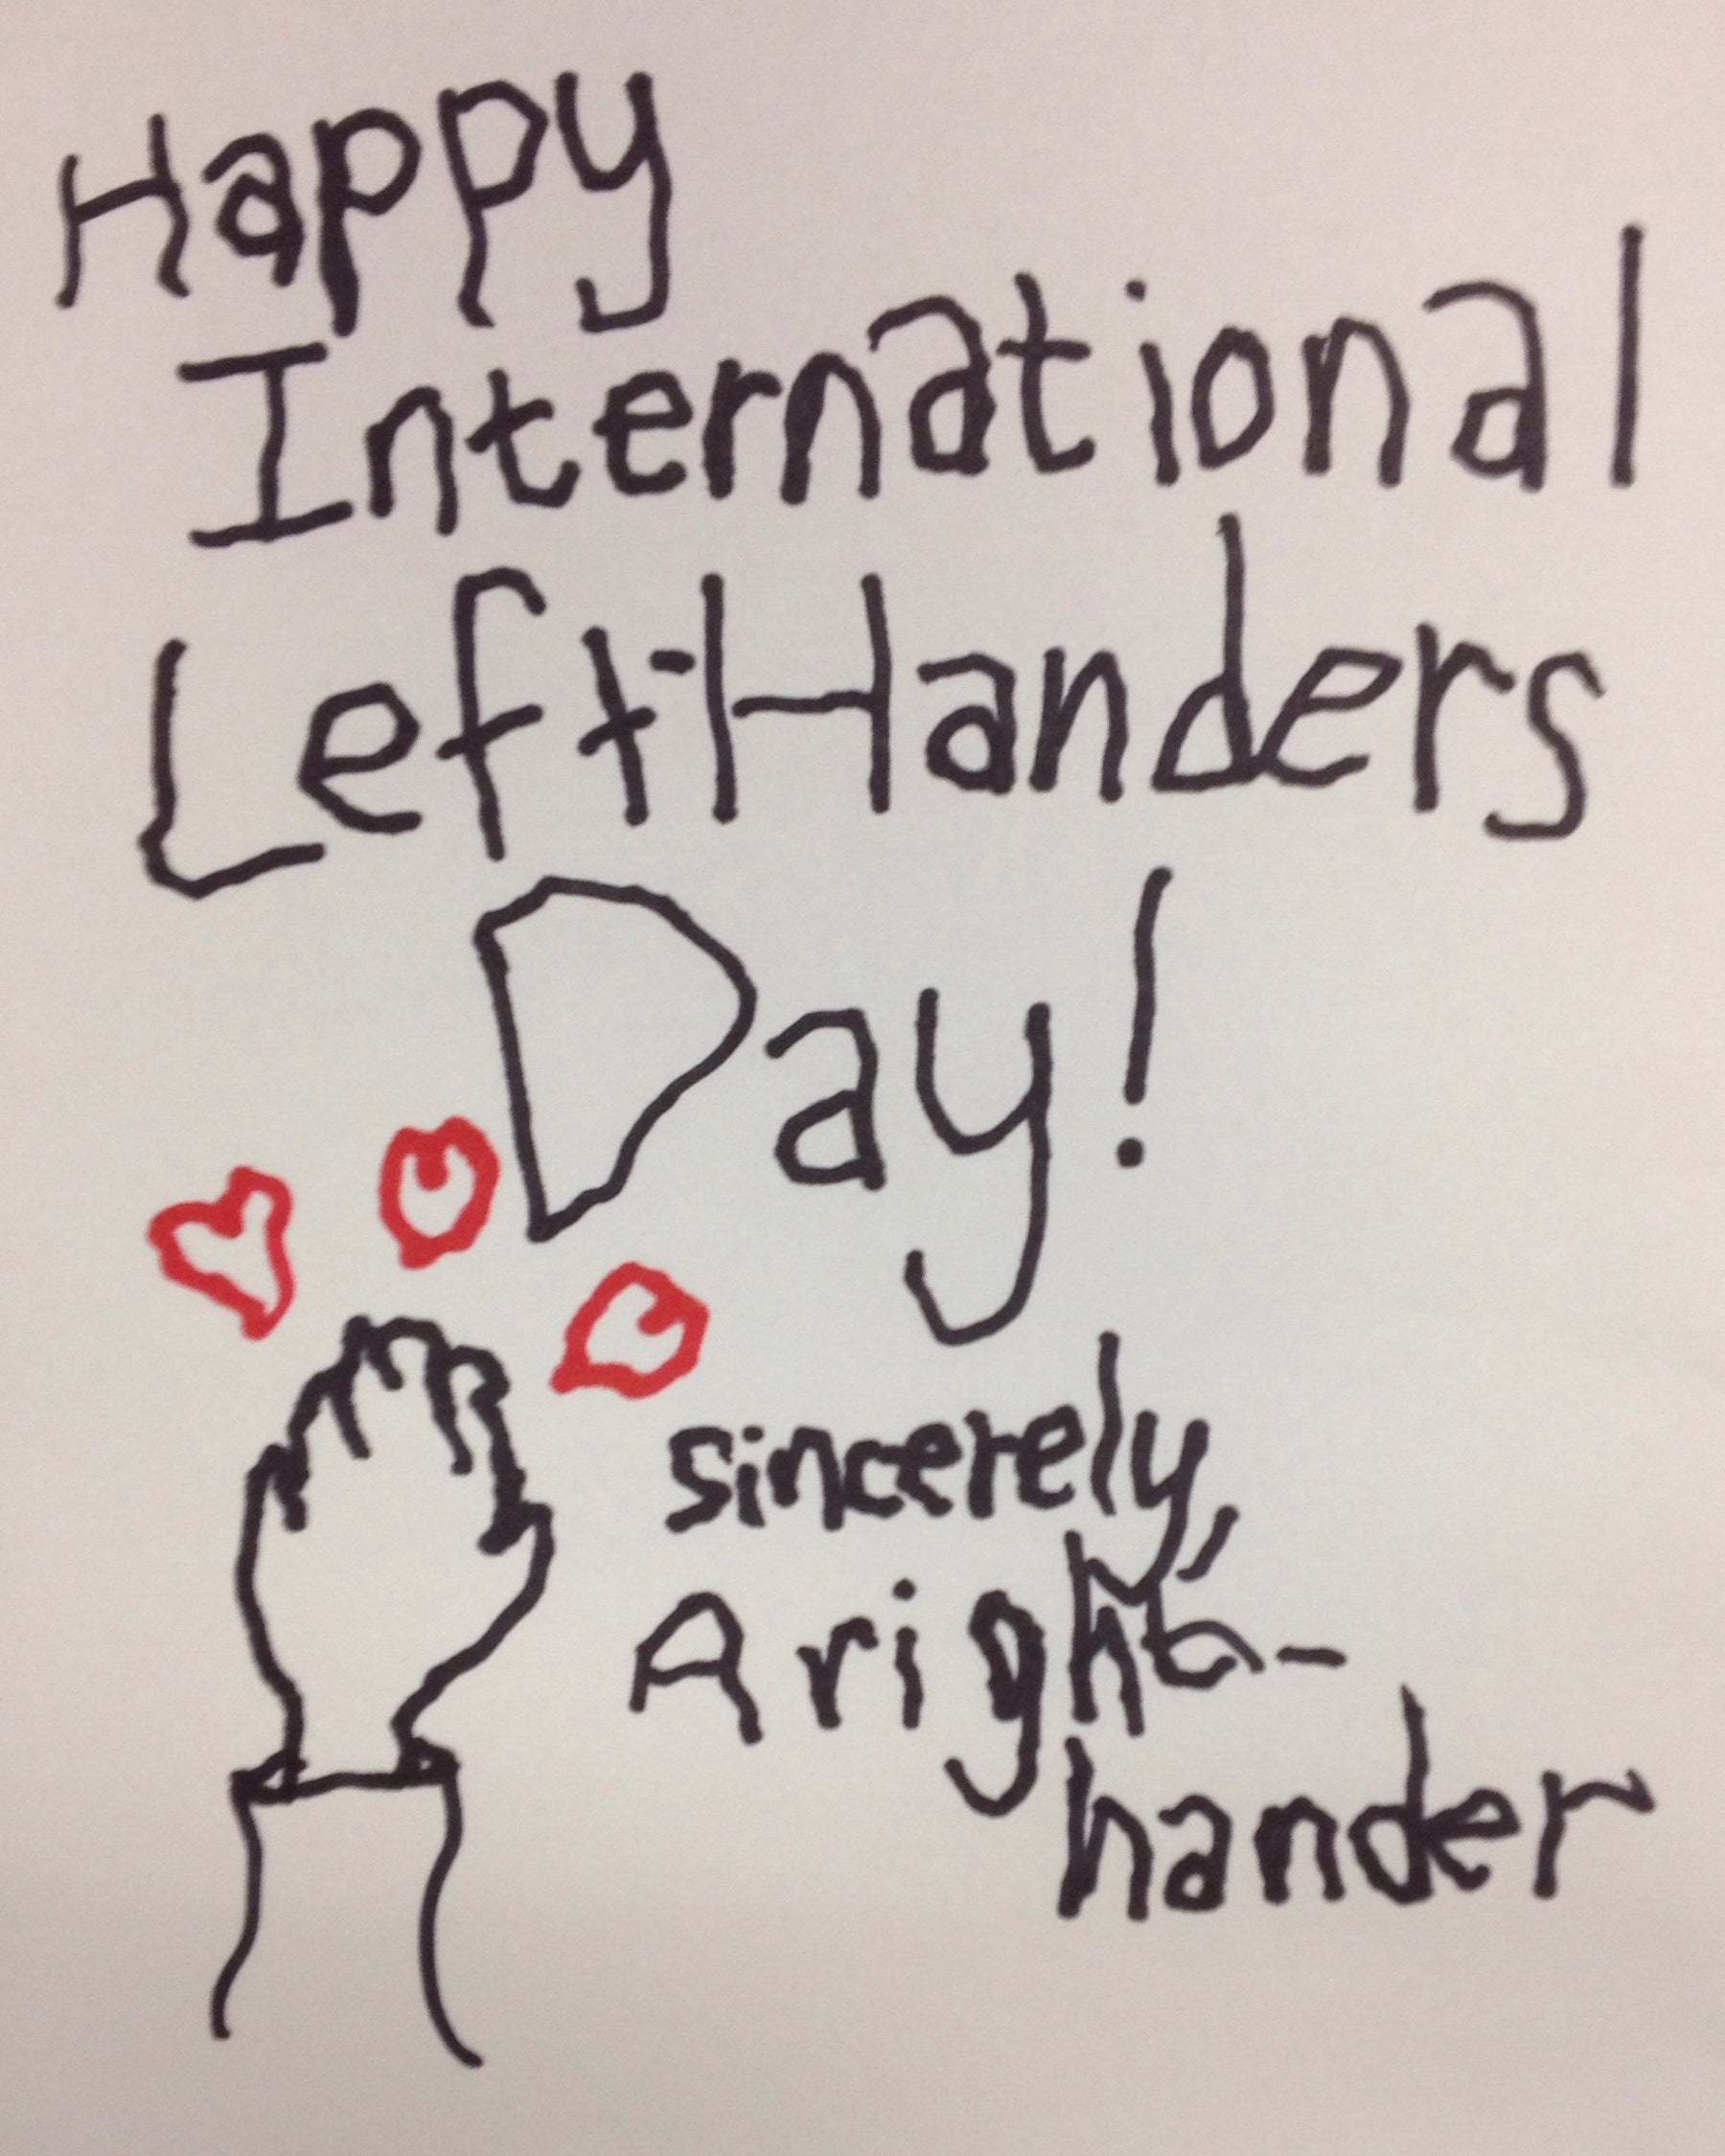 International Left Handers Day